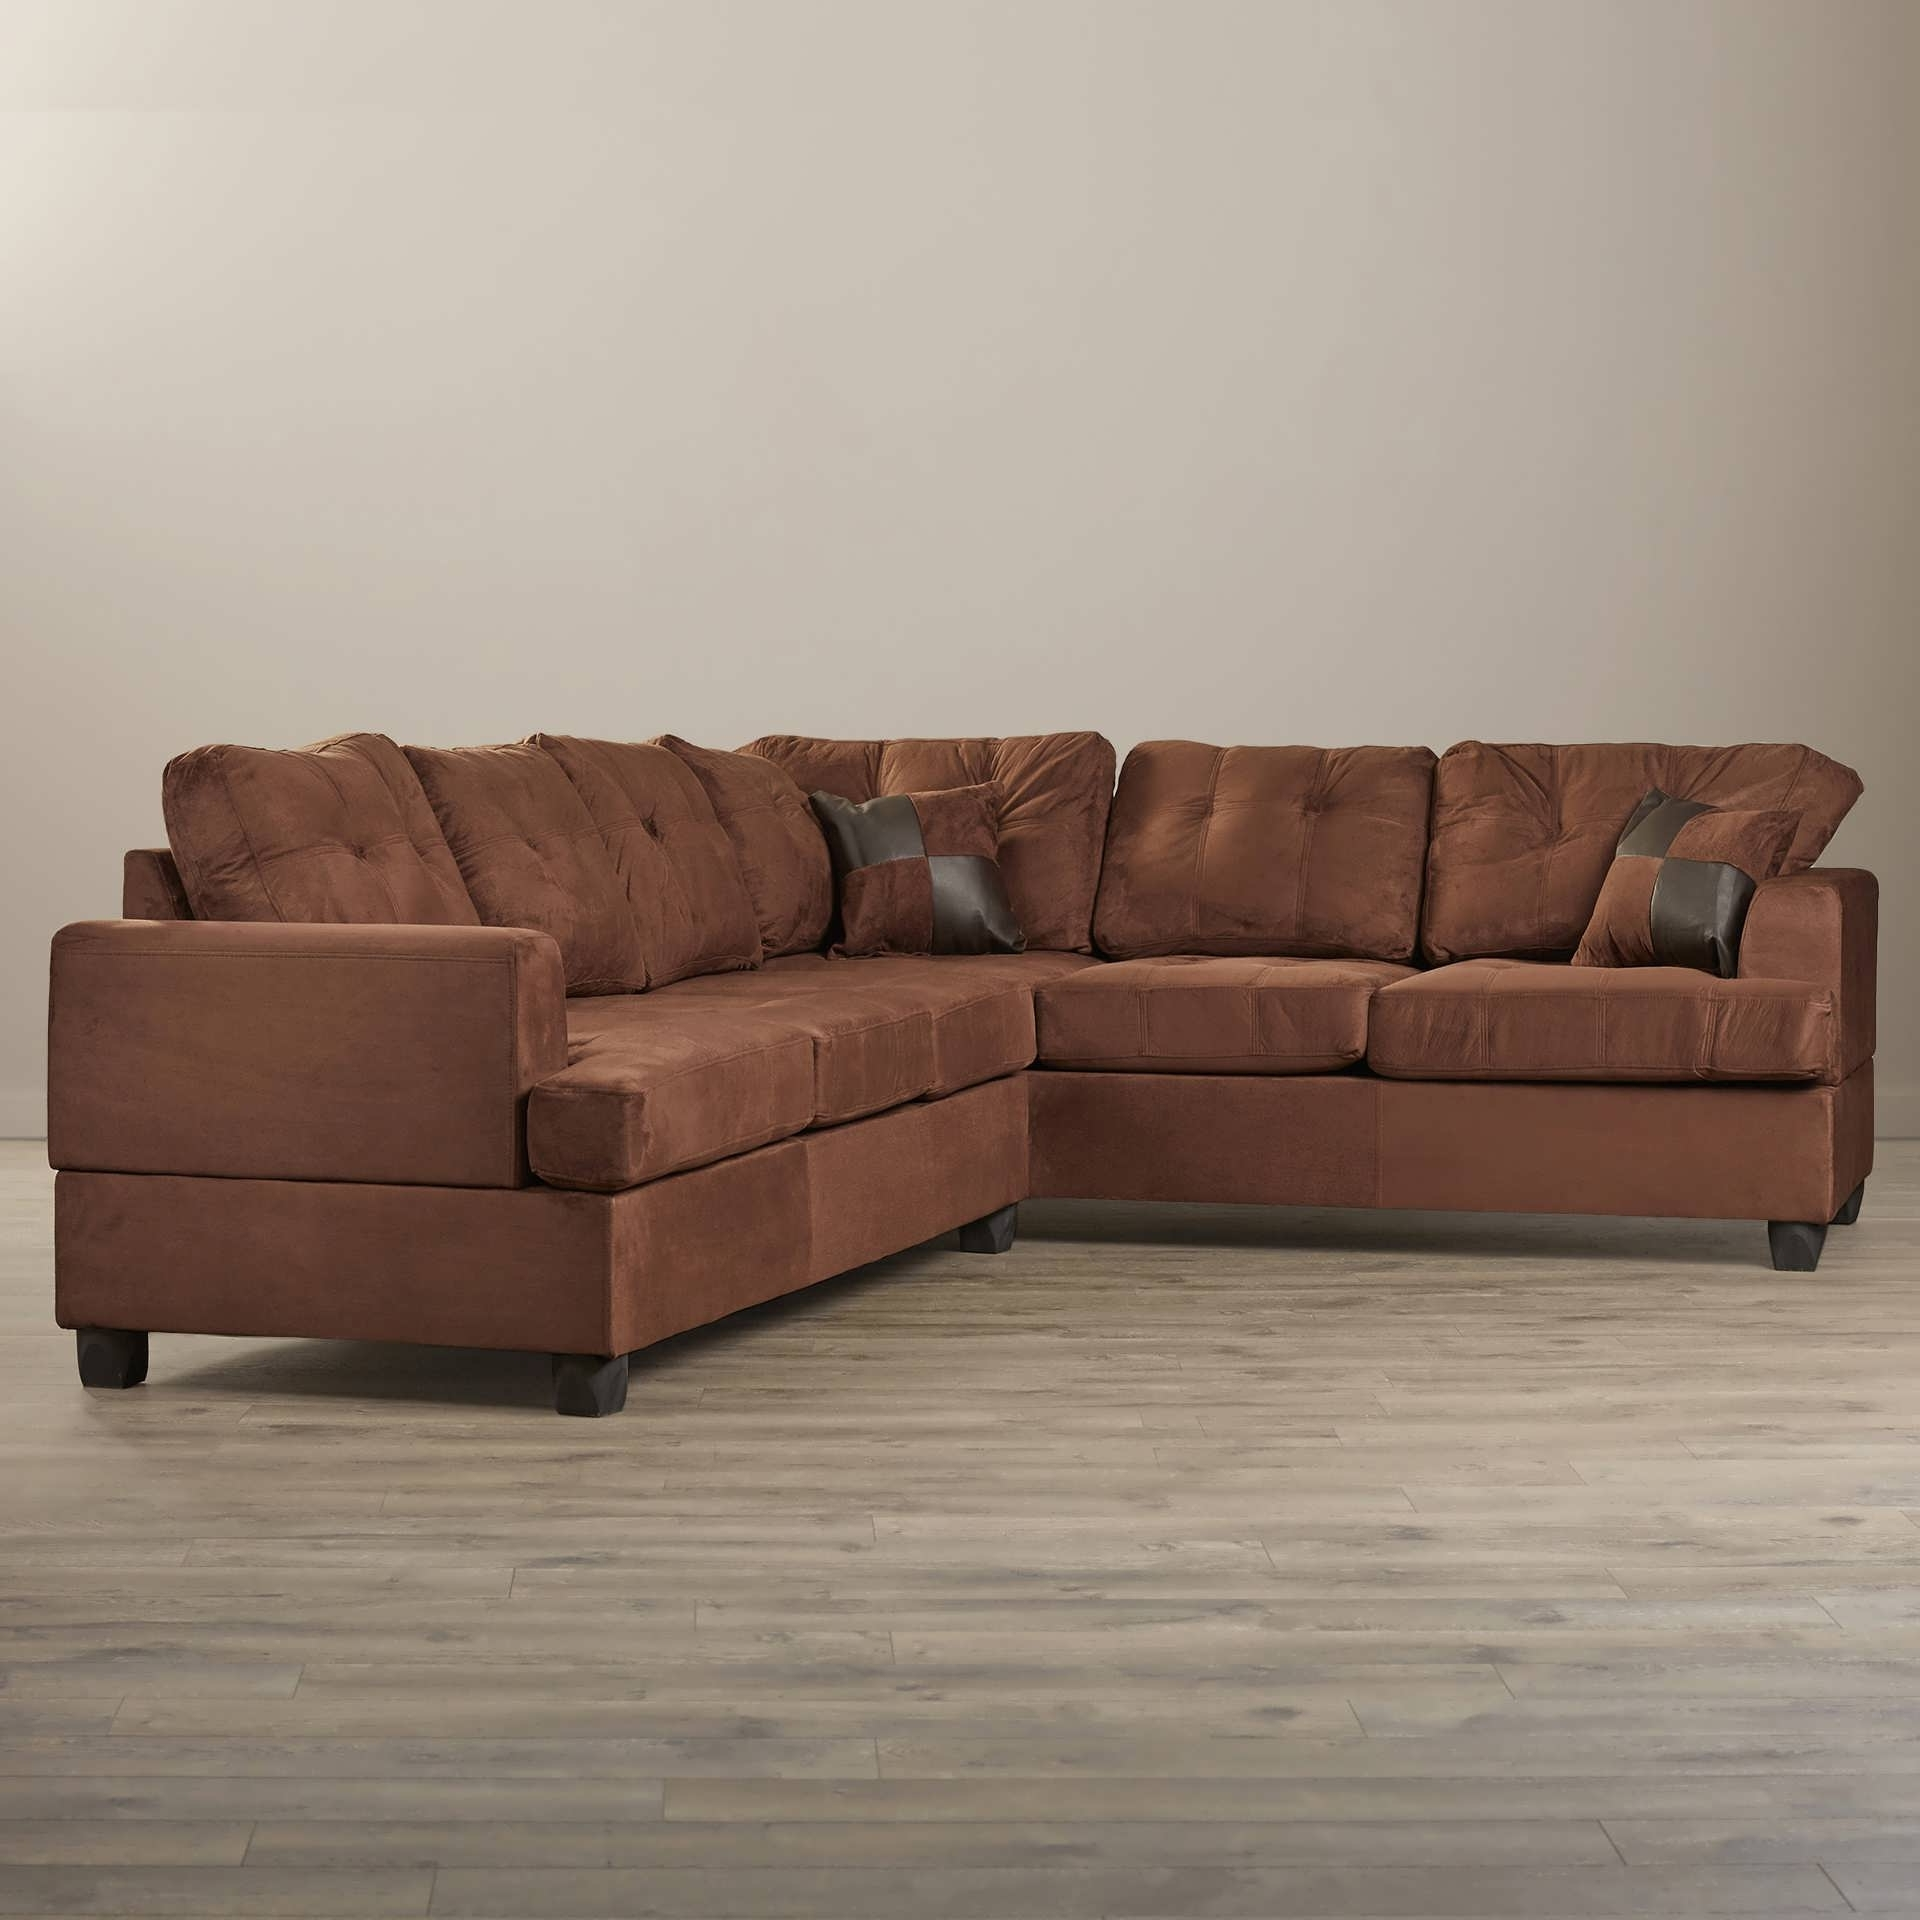 Best And Newest Sofa : White Leather Sectional Sectionals For Sale L Shaped Couch Inside Small Chaise Sectionals (View 10 of 15)